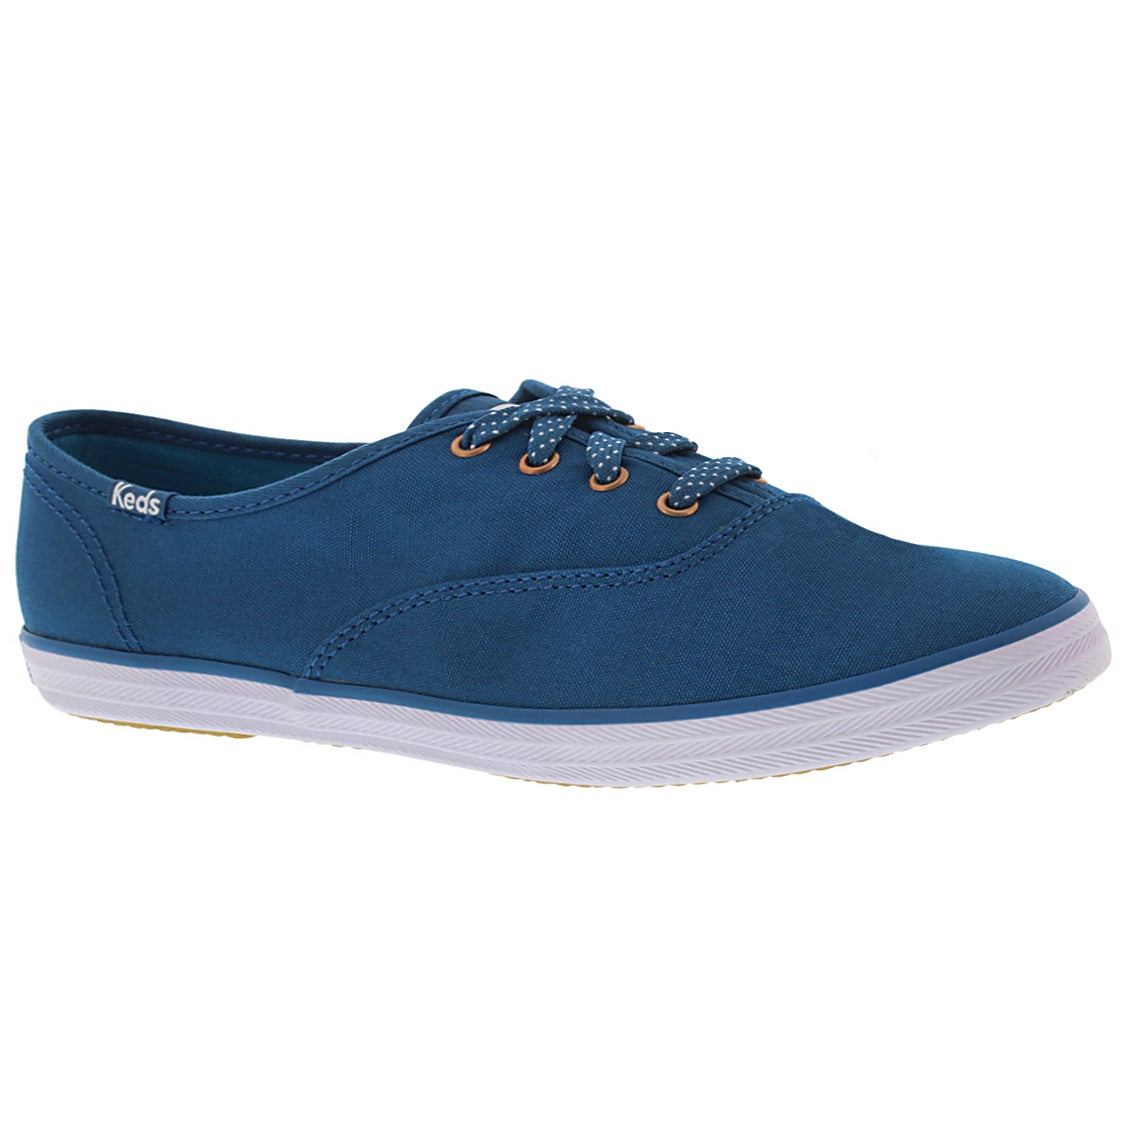 Lds Champion Solid blue canvas sneaker